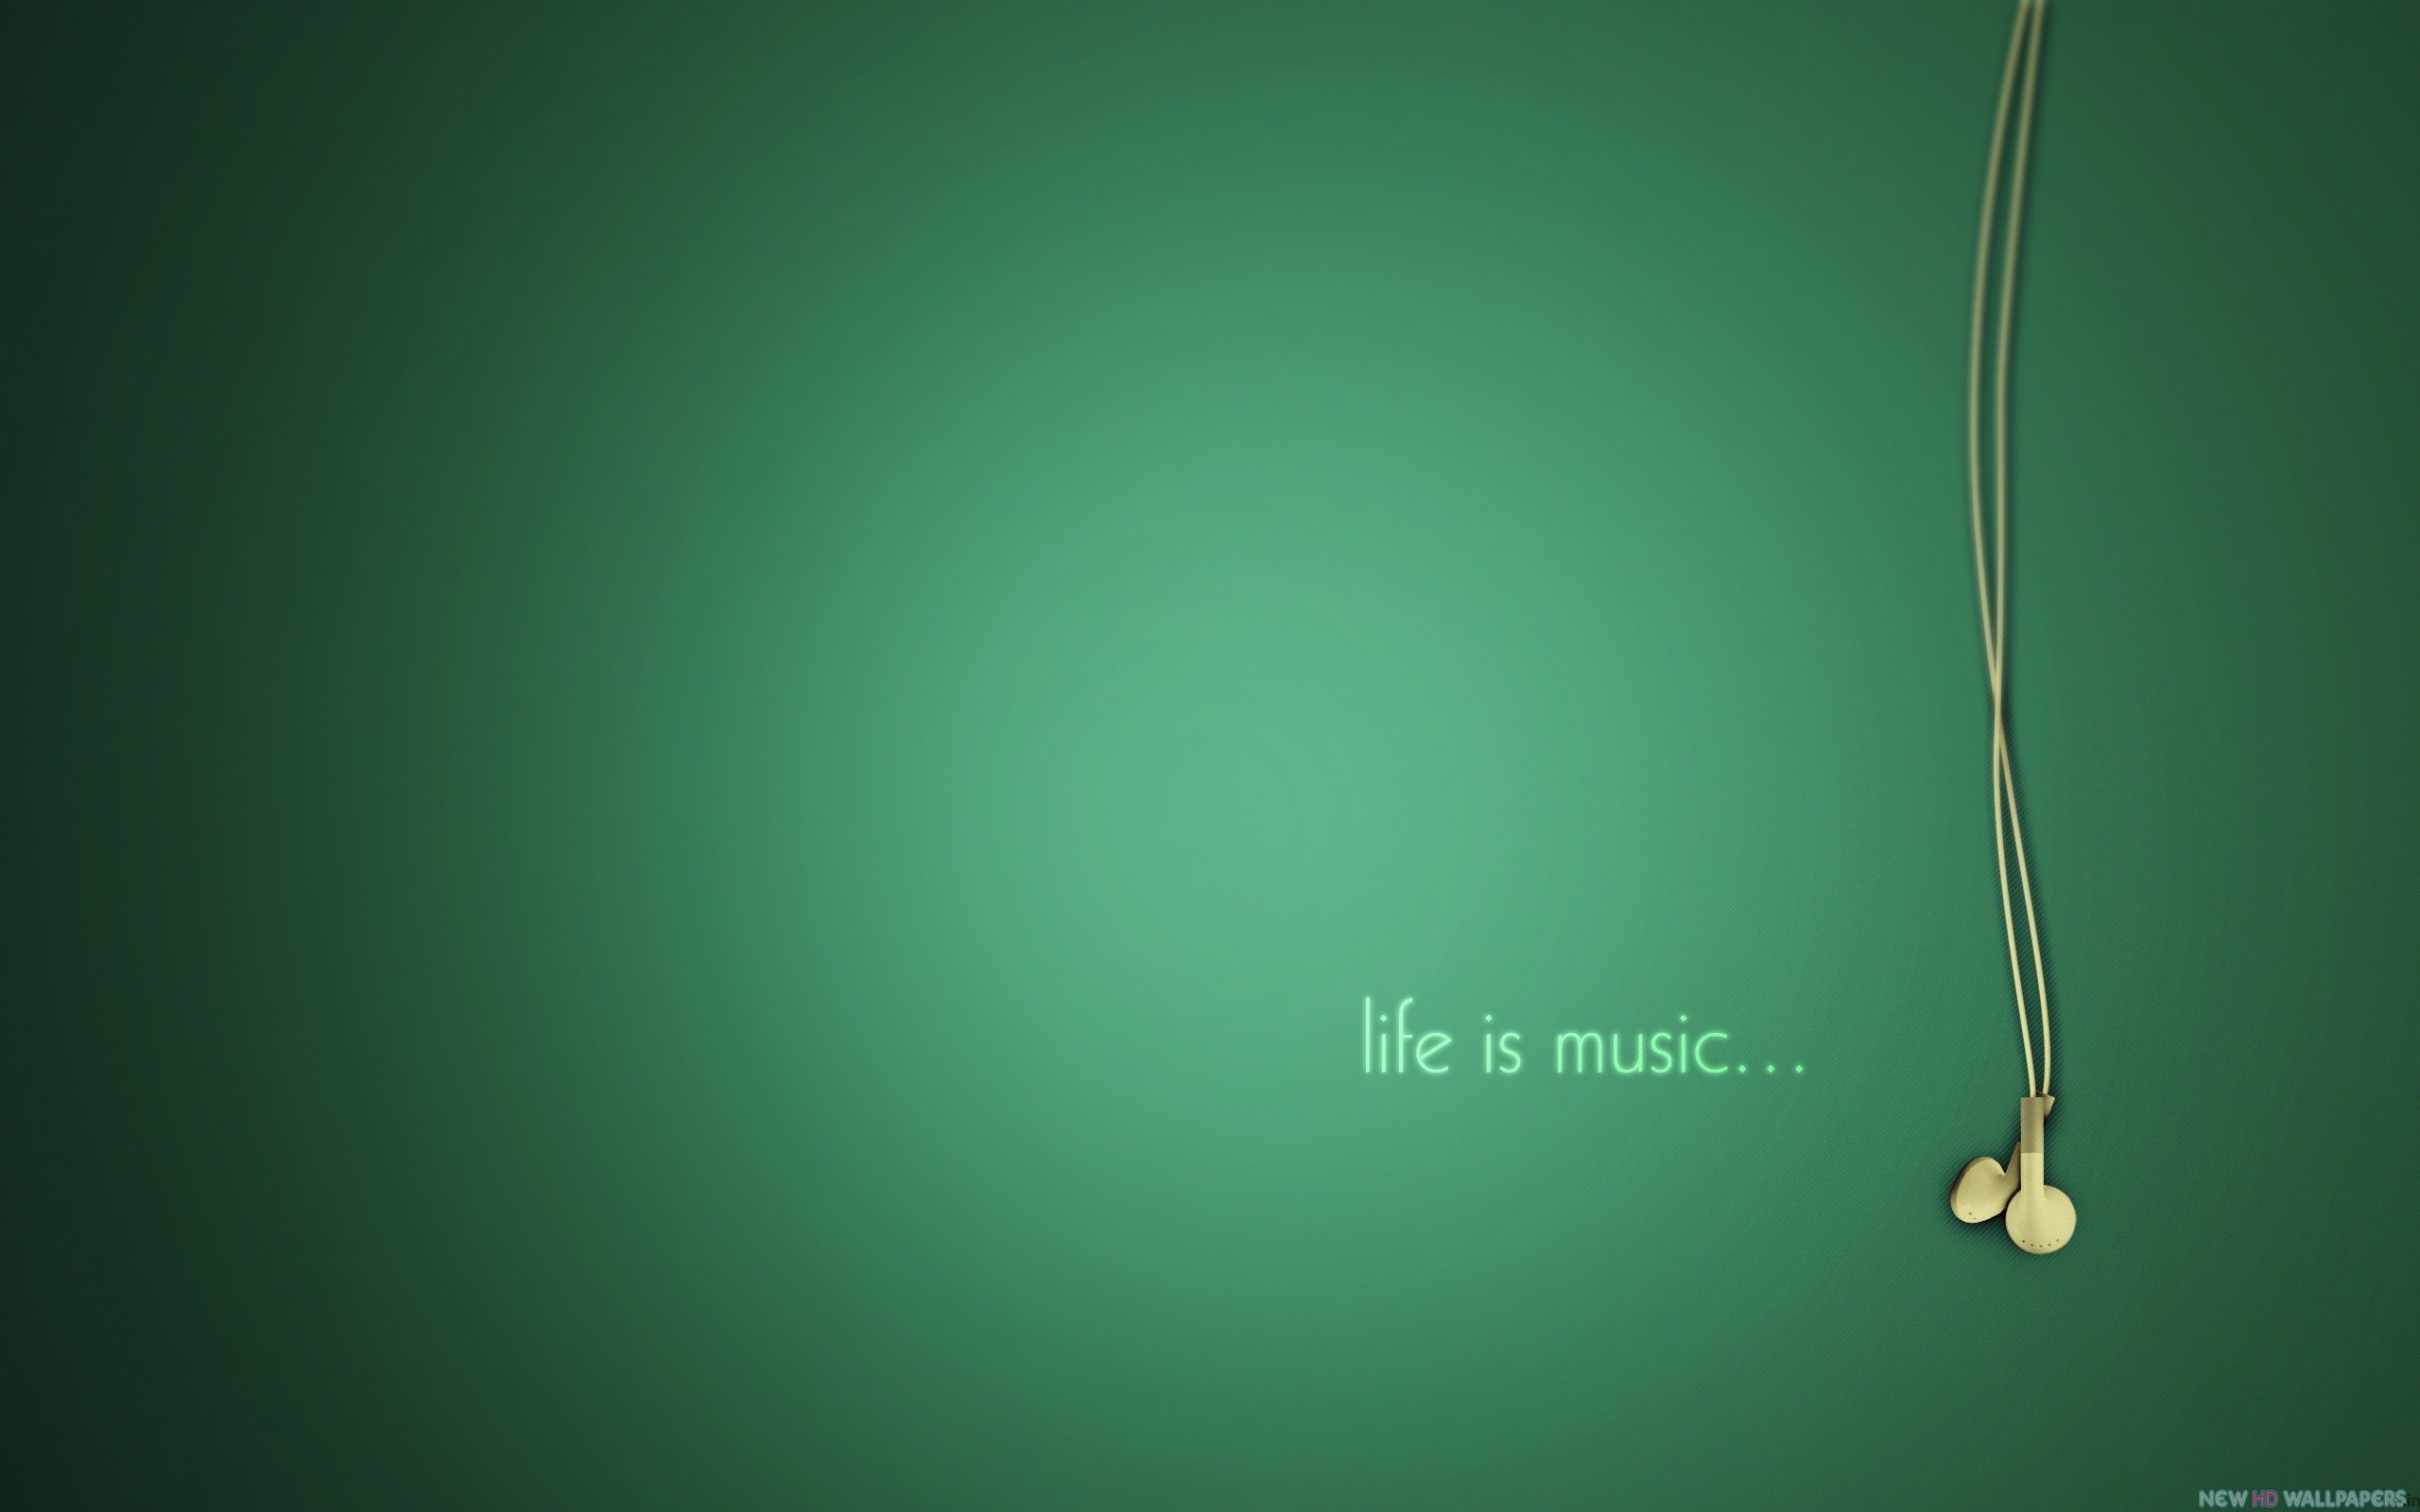 Free Download Life Is Music Background New Hd Wallpapers